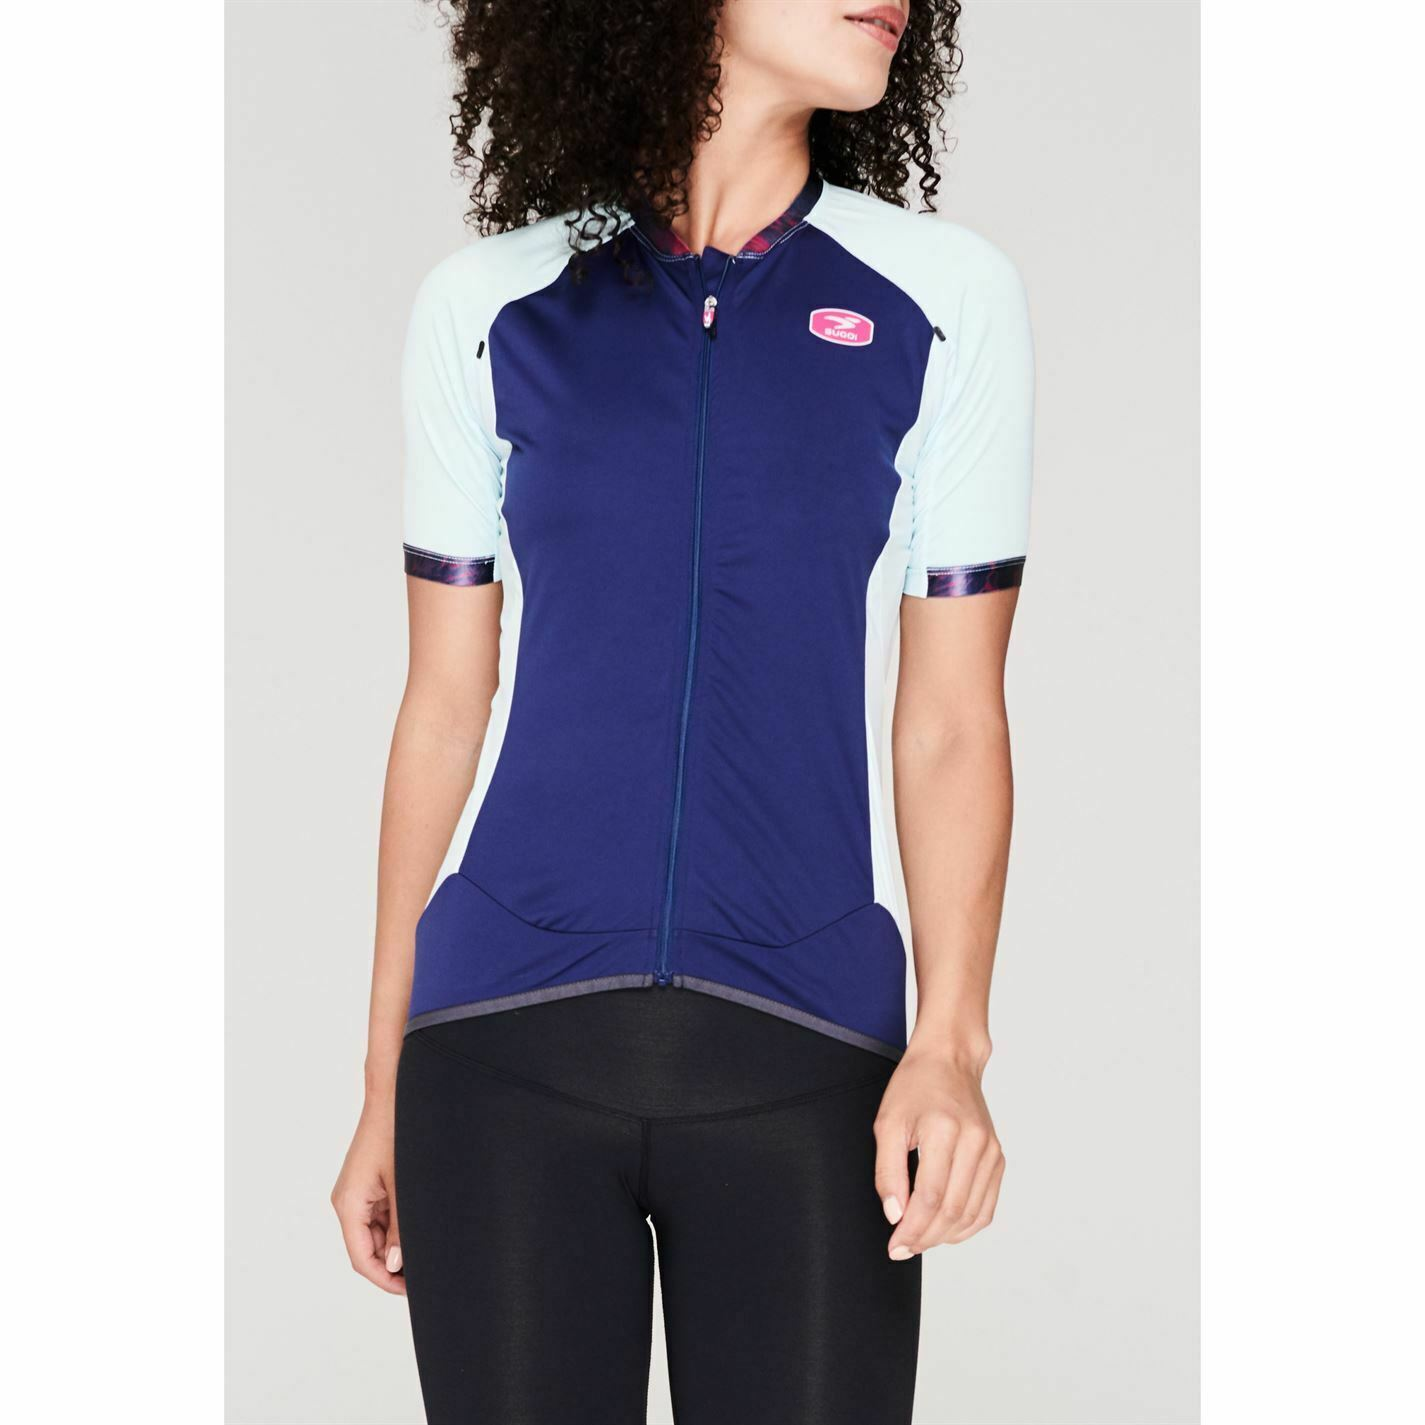 Sugoi Climbers Jersey Ladies Cycle - Short Sleeve Cycling Top